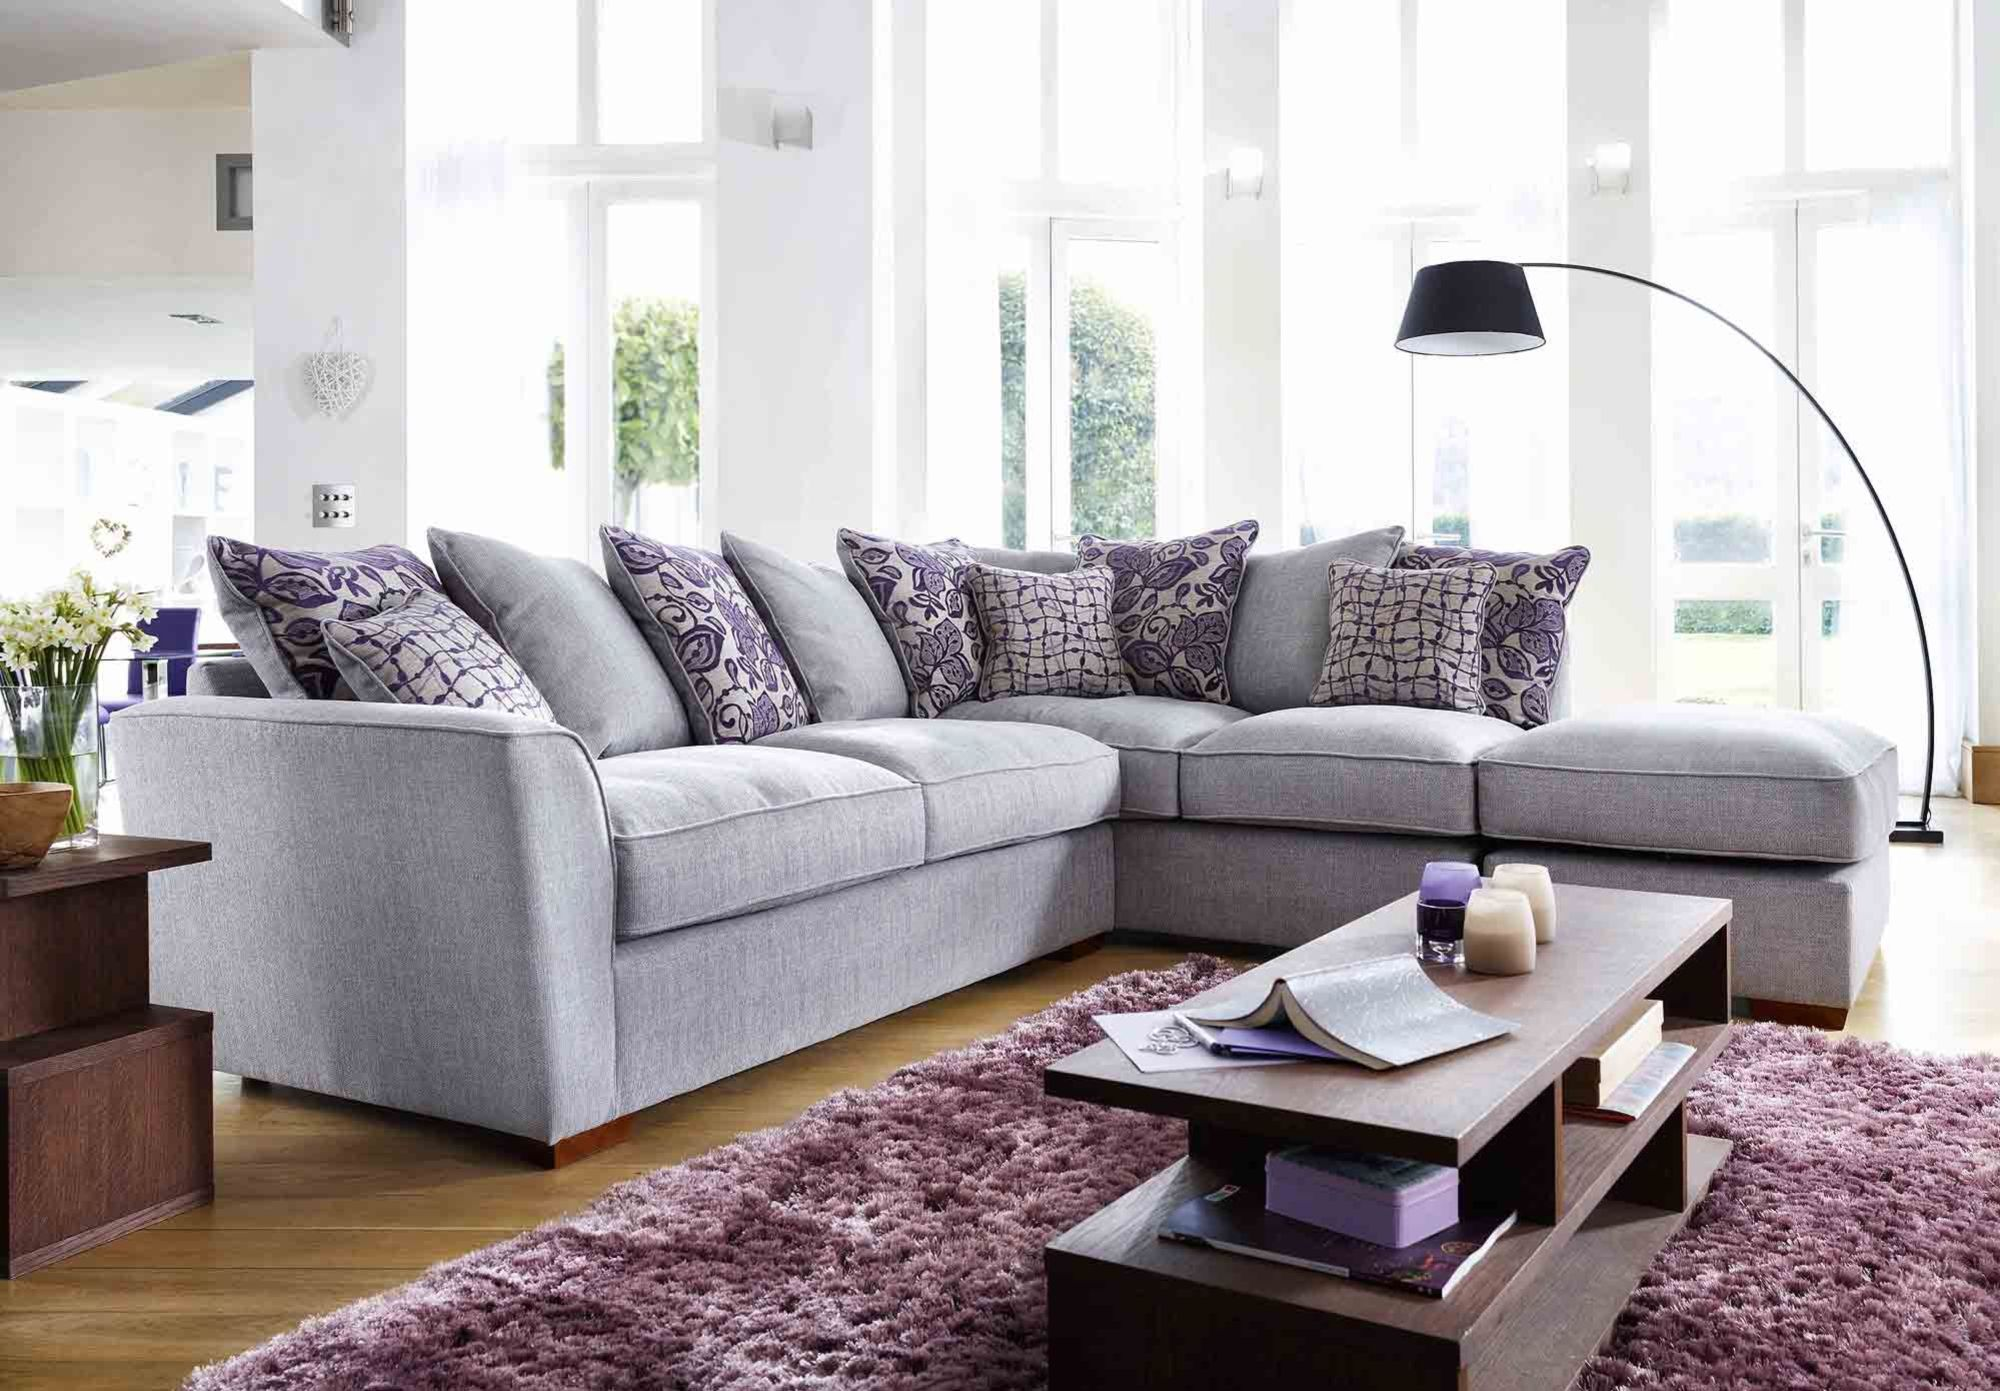 Drawing Room Corner Showpiece: Fable LHF Scatter Back Corner Sofa At Furniture Village